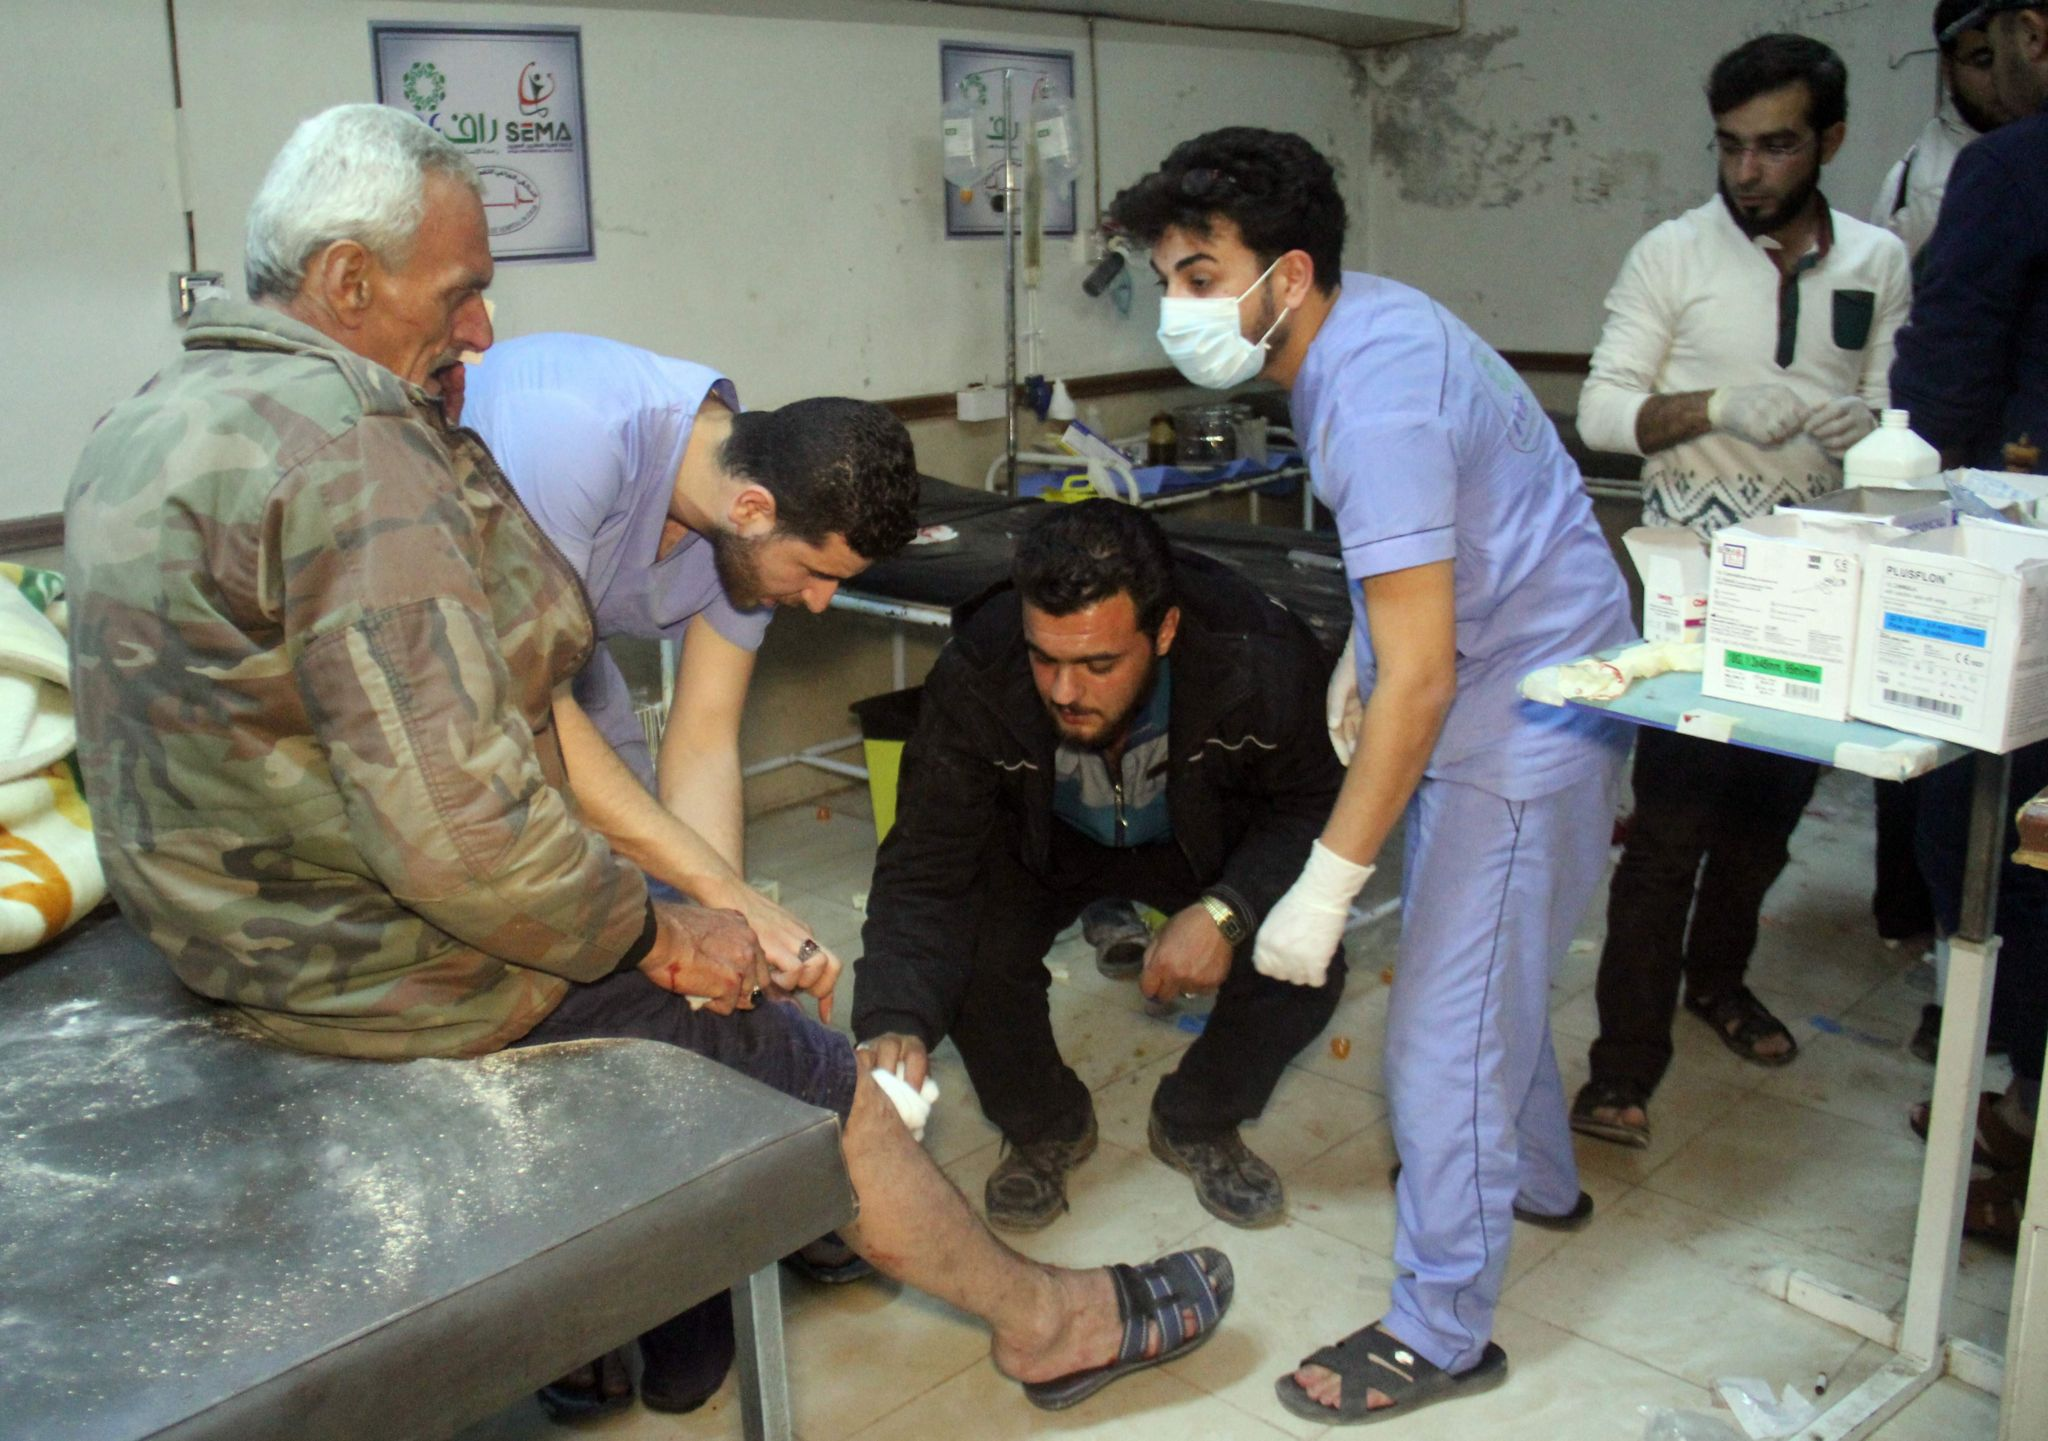 Medical staff treat a wounded victim at a hospital following air strikes that targeted Idlib on 31 May